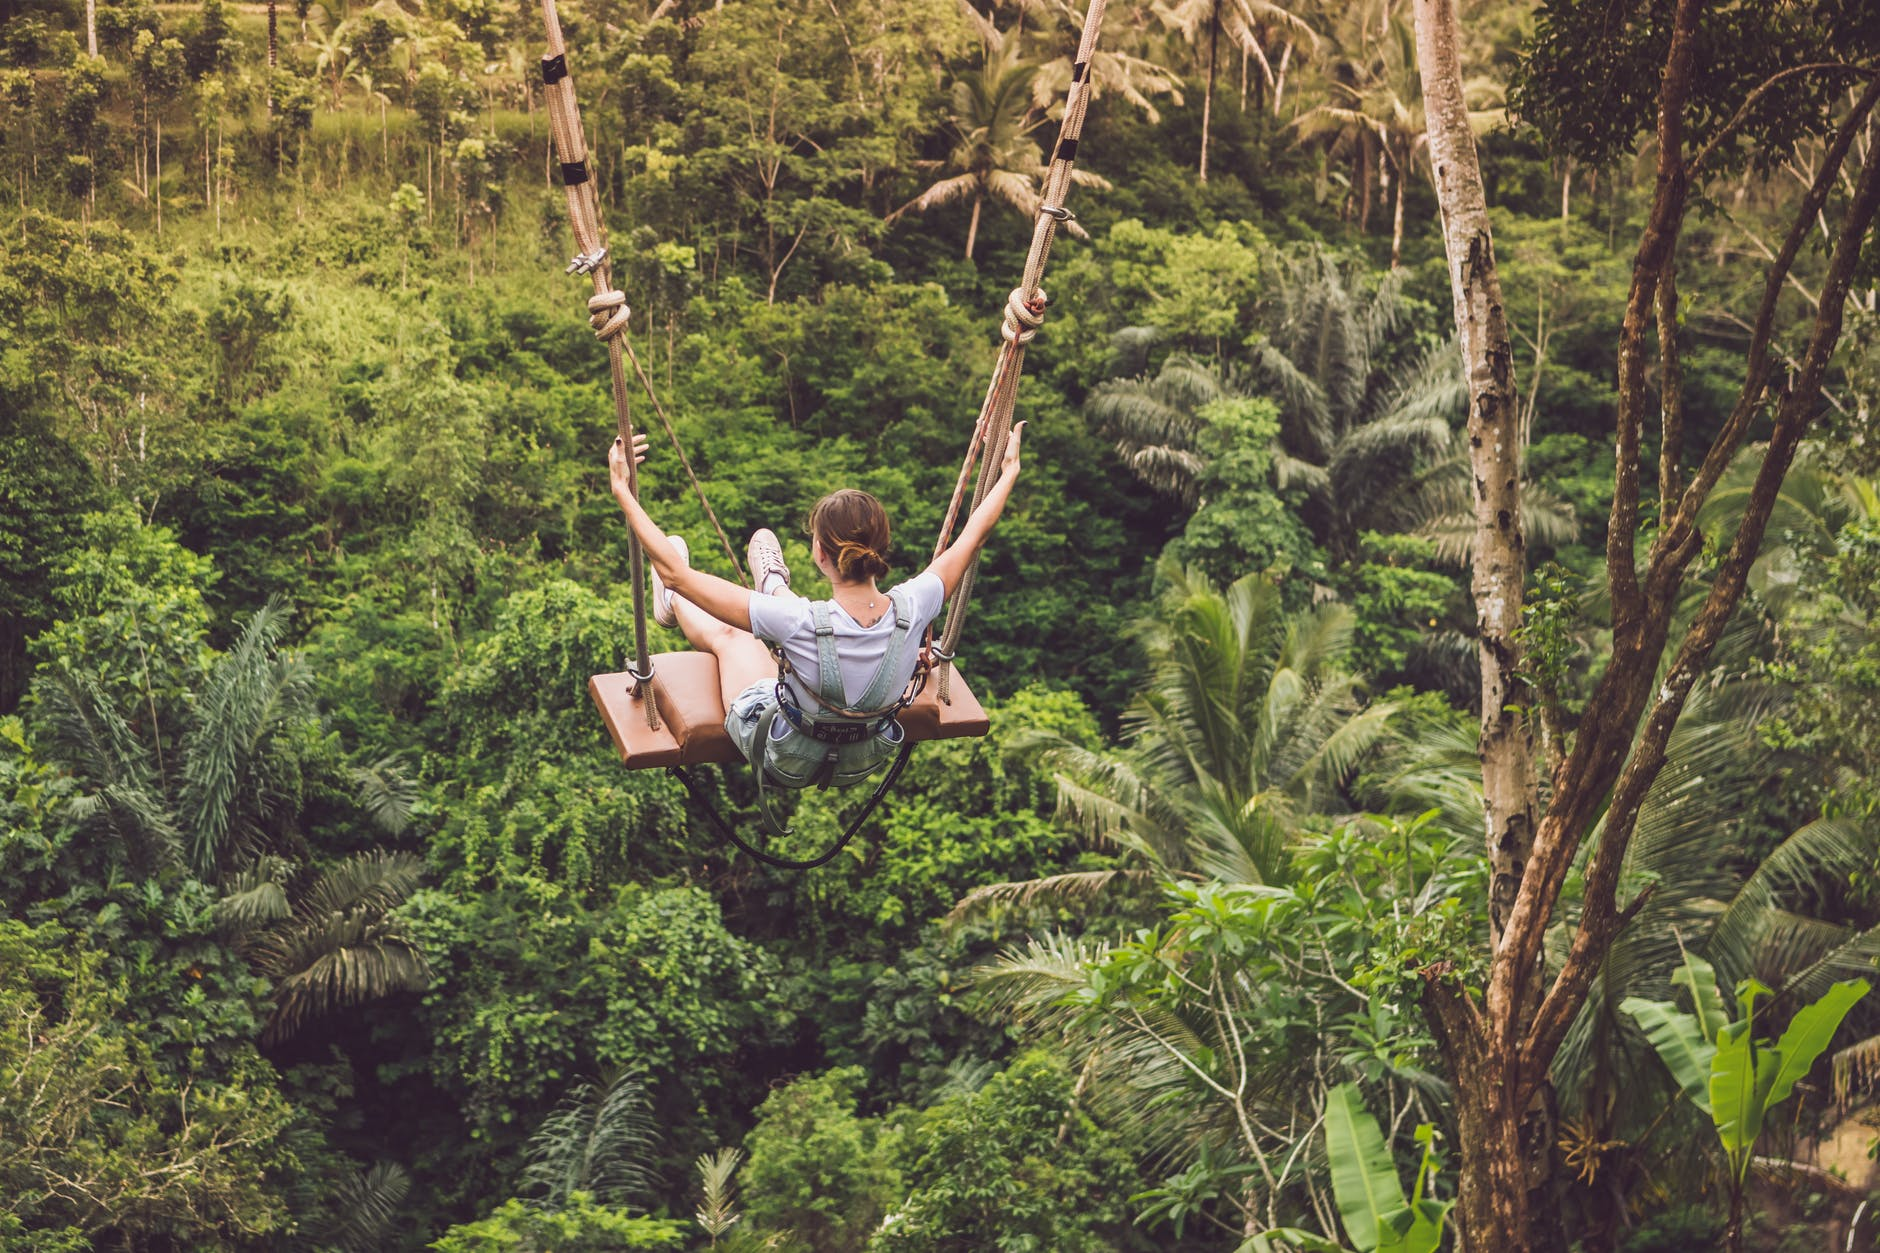 Swinging  in the rainforest